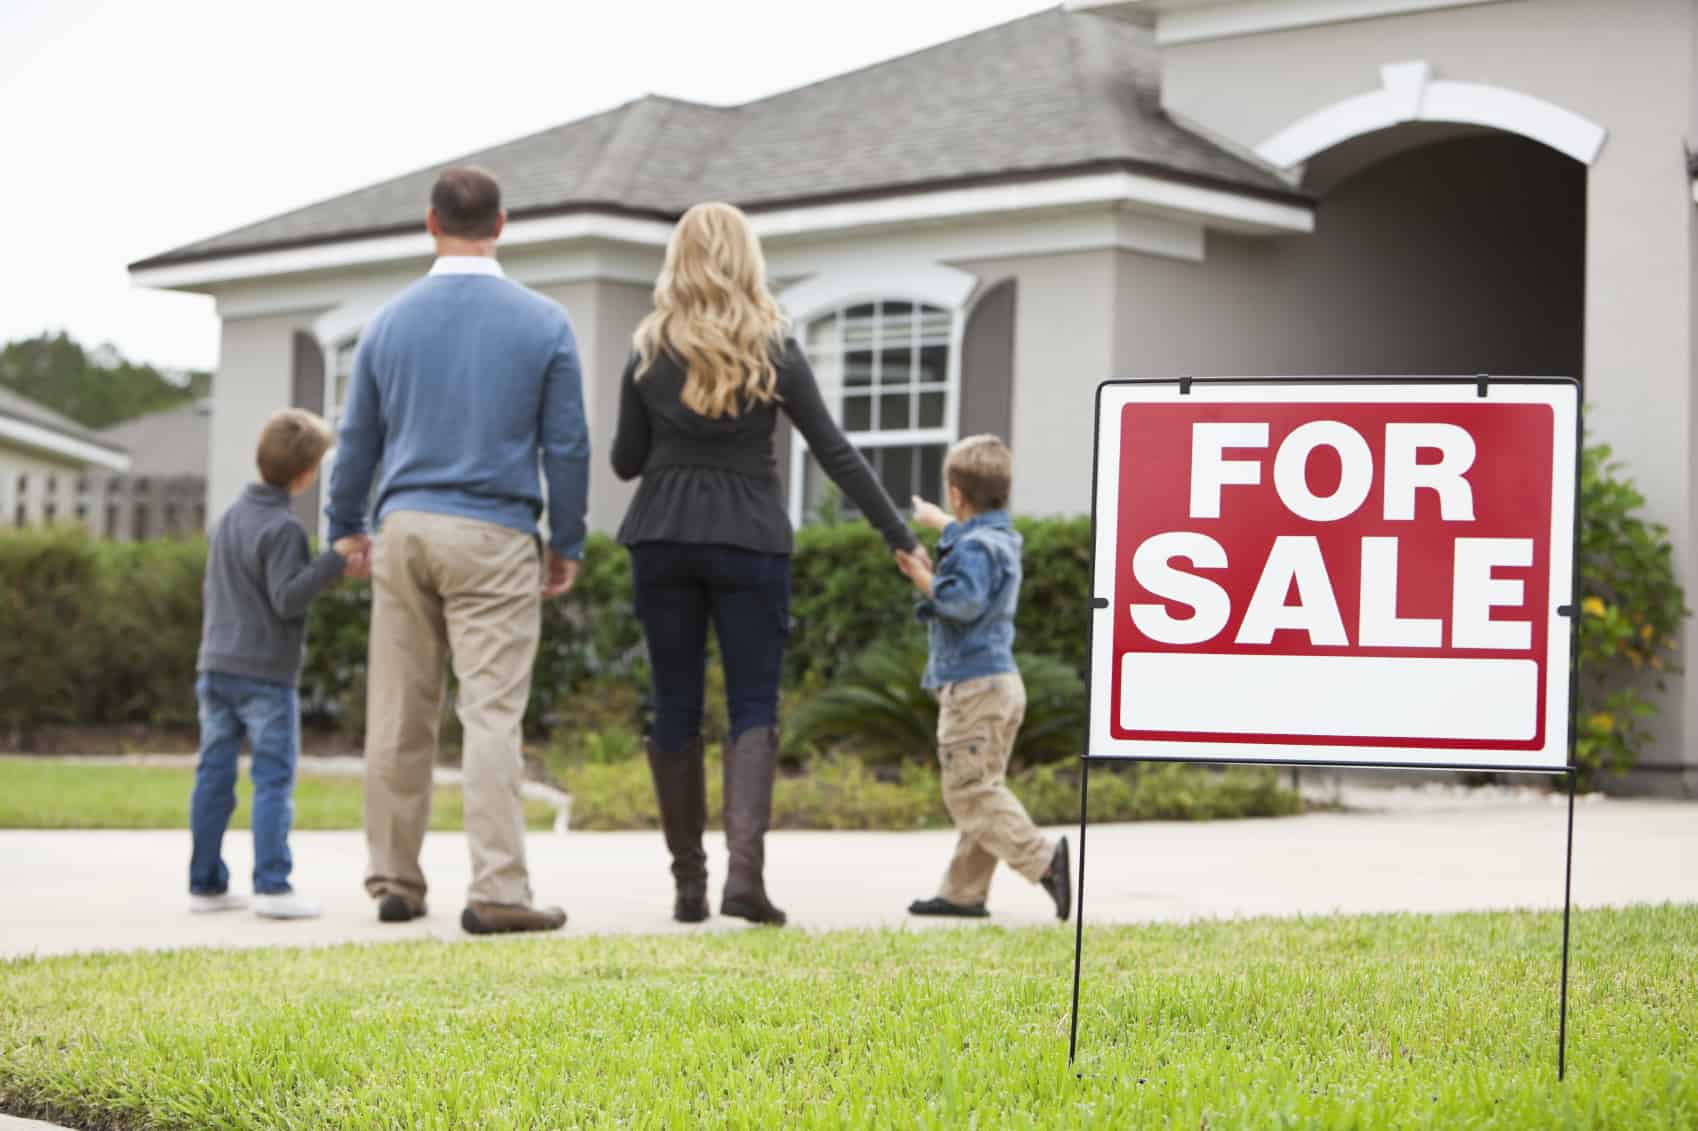 Family standing in front of house with FOR SALE sign in front yard.